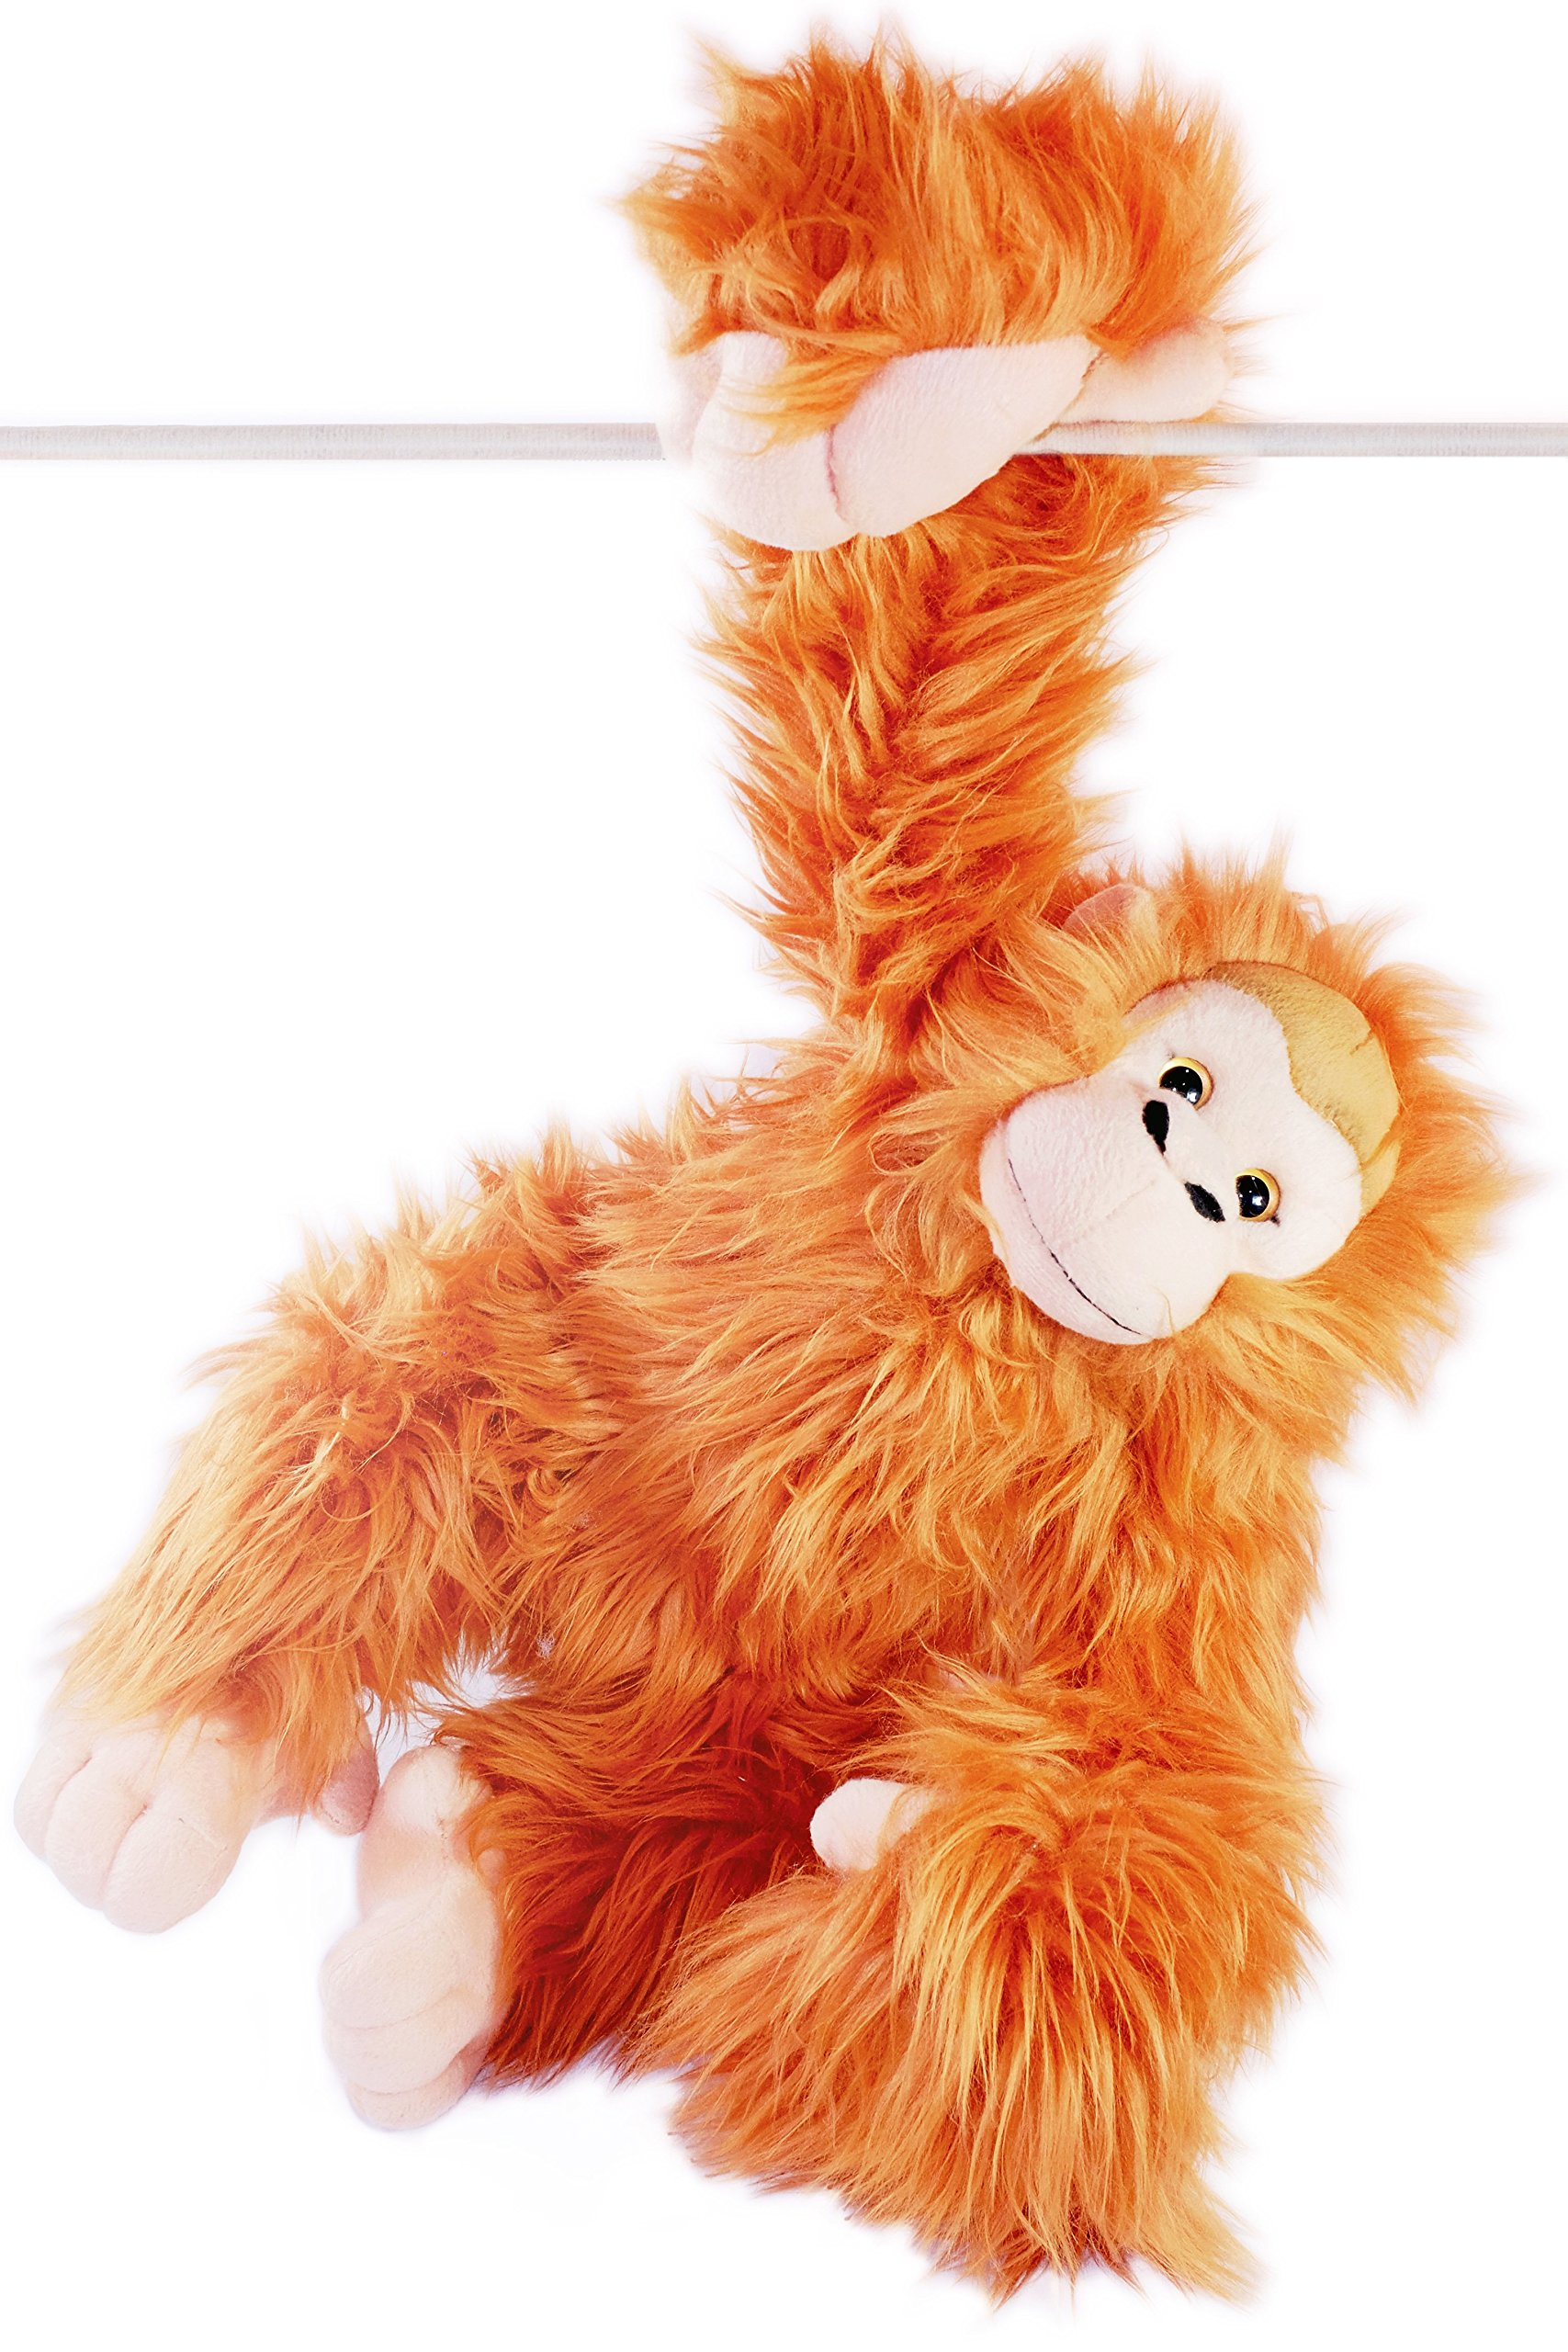 VIAHART Ornaldo The Orangutan Monkey   21 Inch (with Hanging Arms Outstretched) Stuffed Animal Plush Chimpanzee   by Tiger Tale Toys by VIAHART